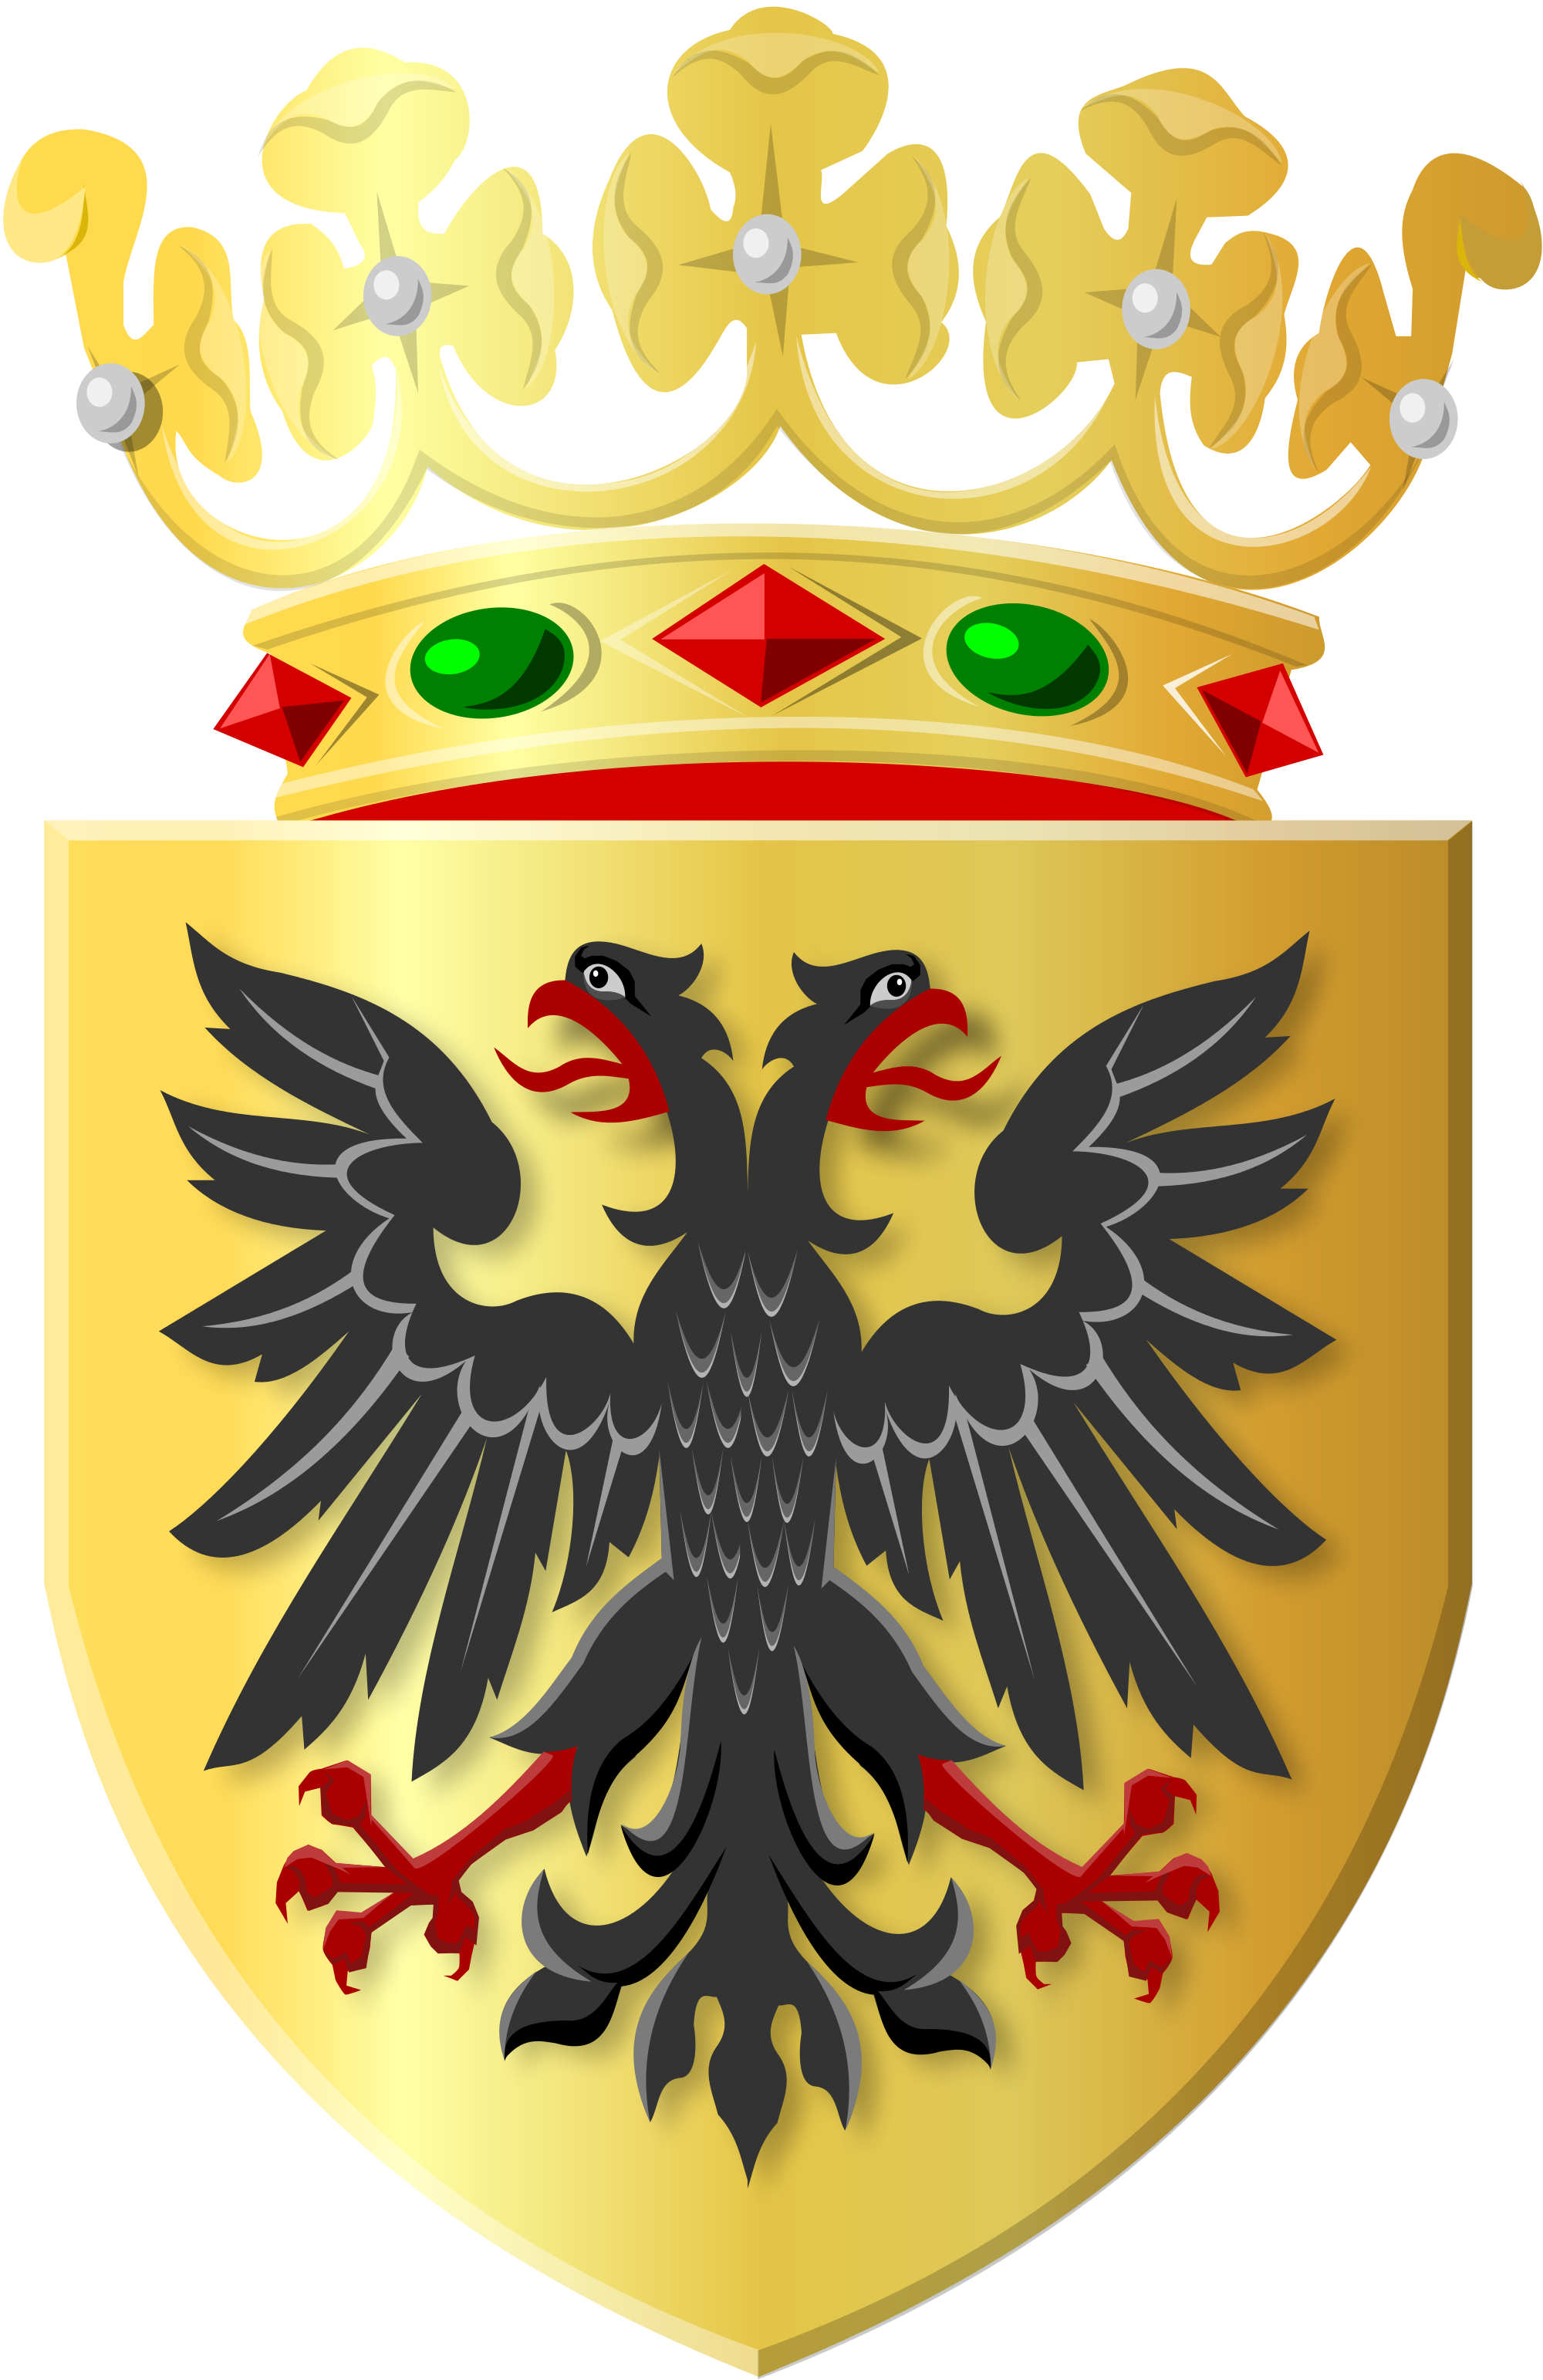 File:Golden shield with black eagle and golden crown.svg - Wikimedia ... png freeuse library